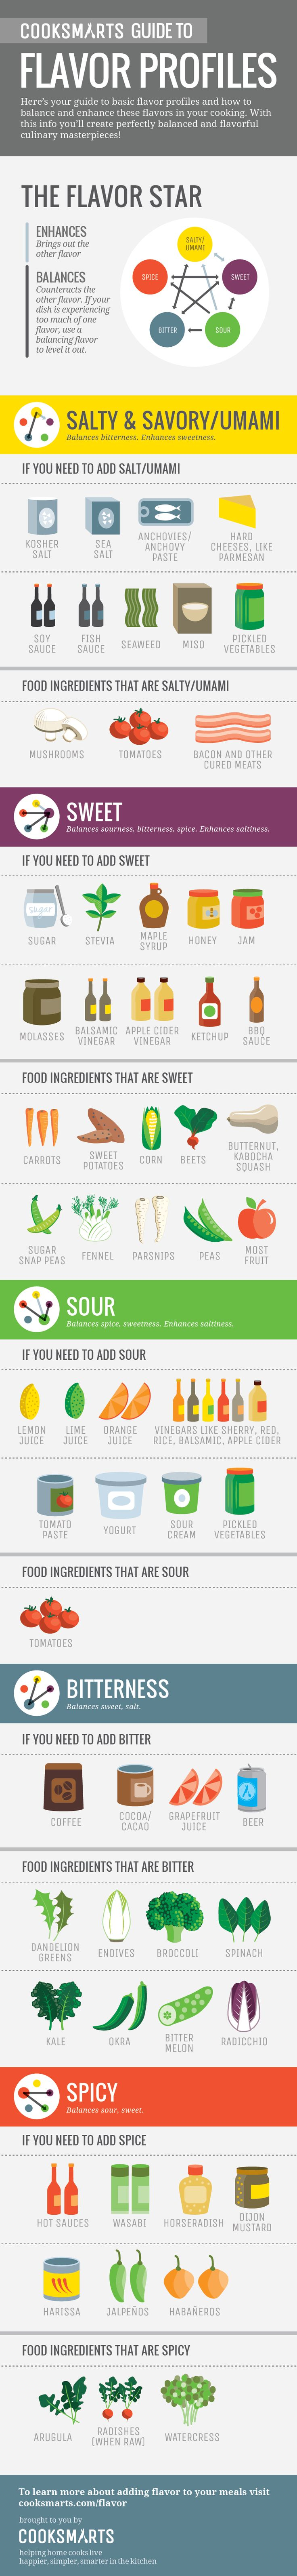 Cook Smarts' Guide to Flavor Profiles #infographics #cookingtips #flavor